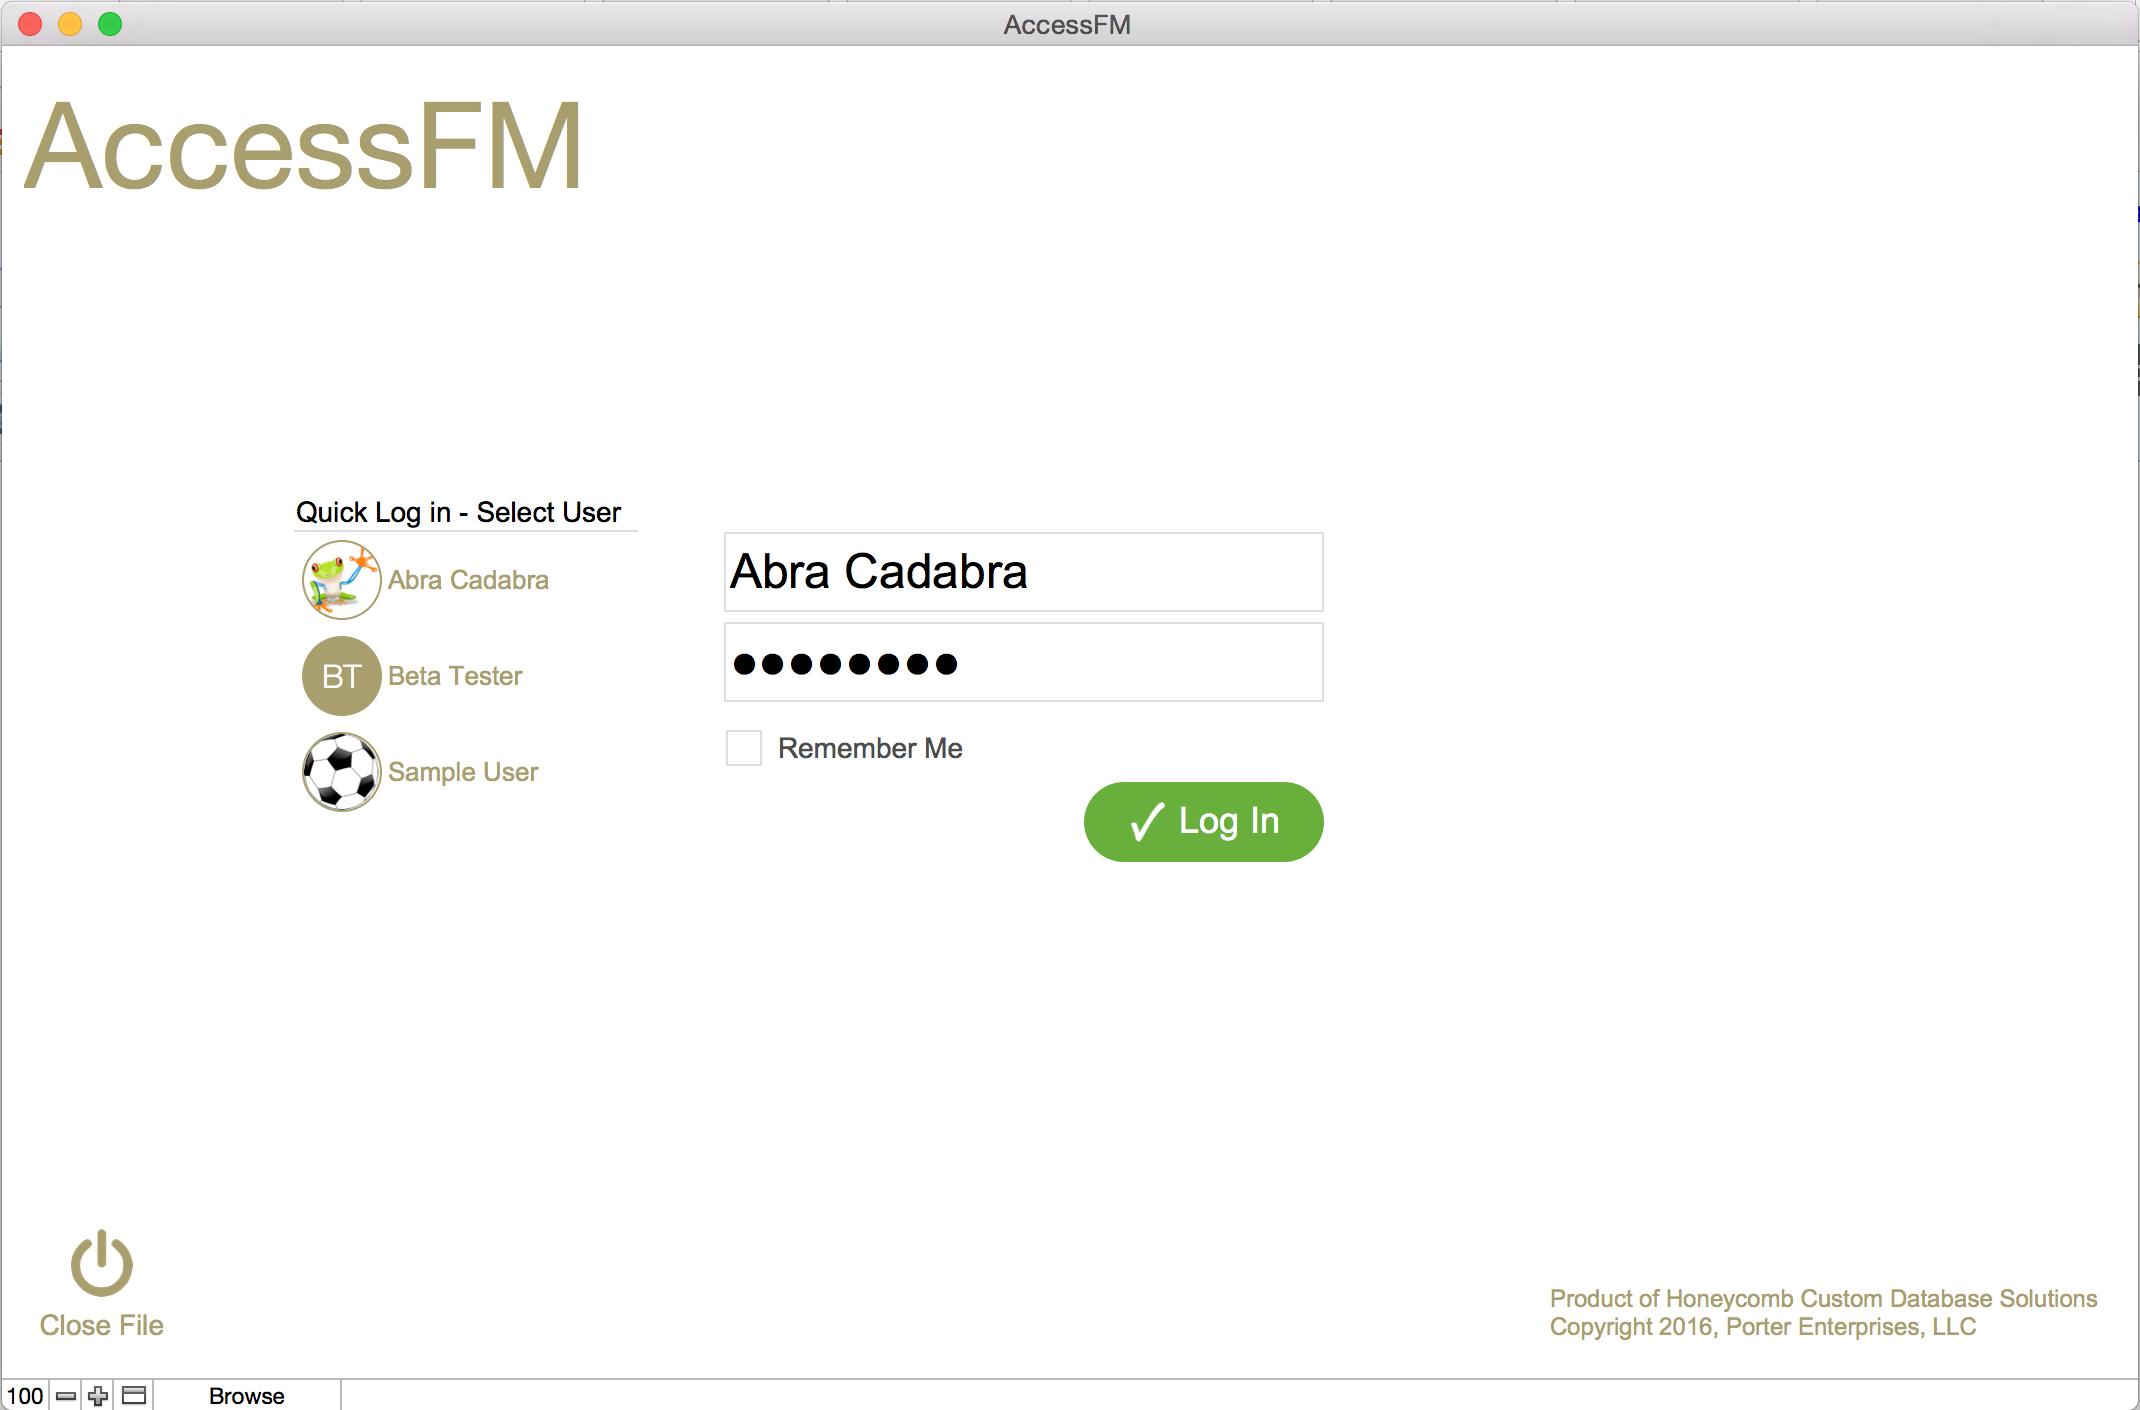 AccessFM Login Screen